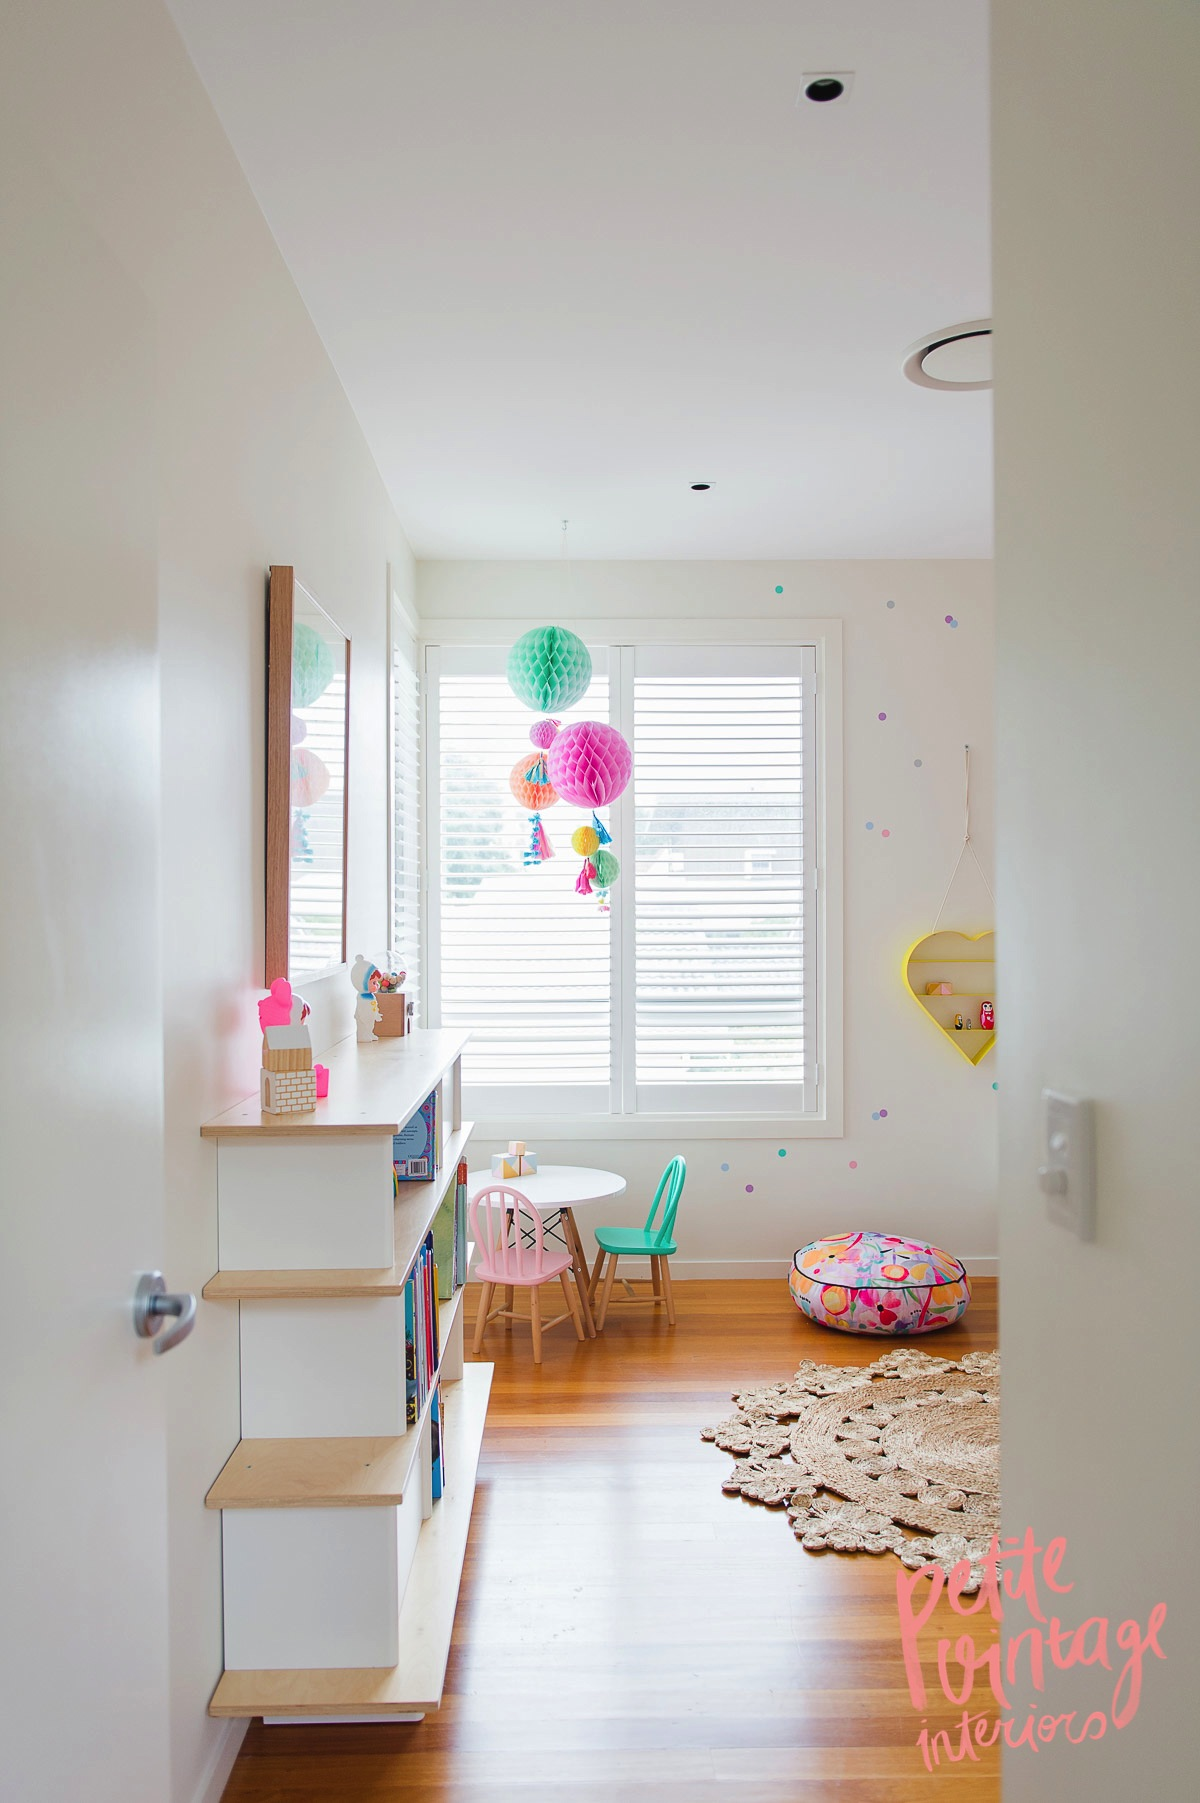 ideas decoracin dormitorio infantil nia